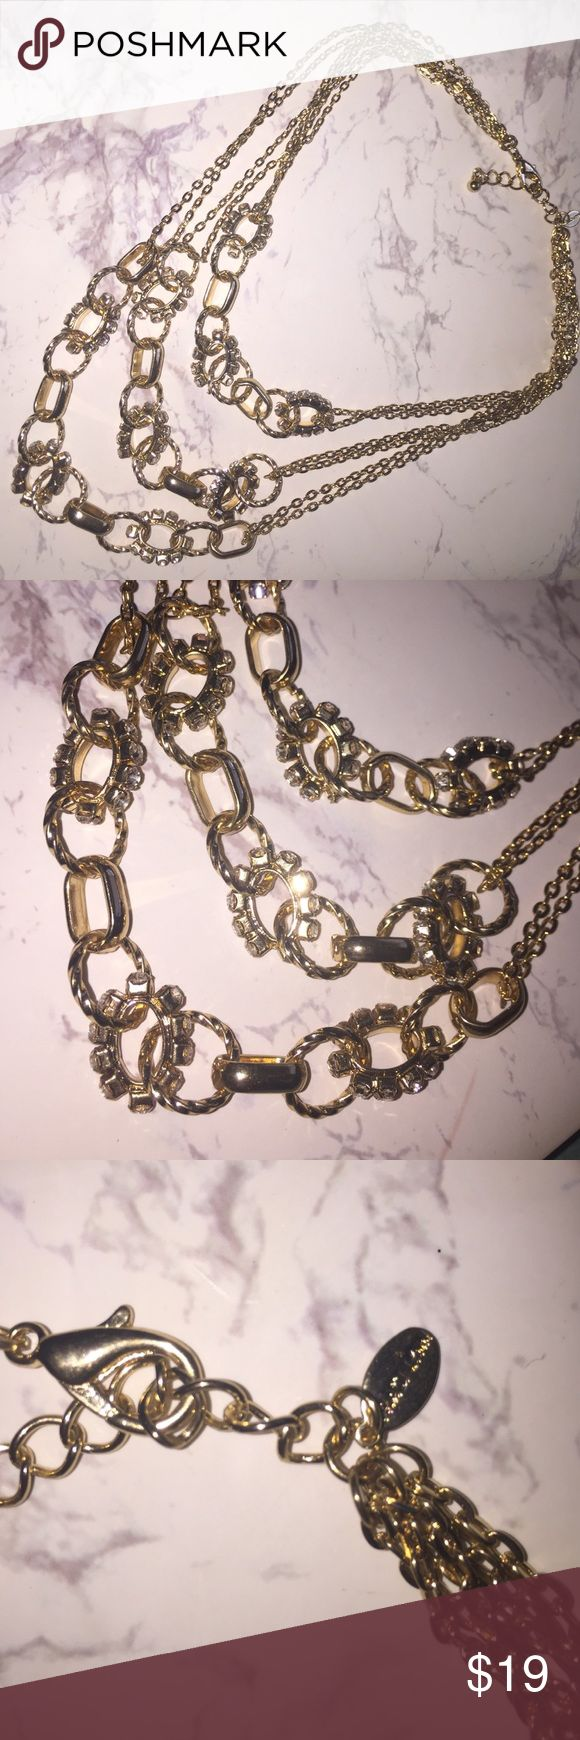 Traci Lynn Gold Necklace Multi strand gold necklace with rhinestones. Never been worn Traci Lynn Jewelry Necklaces